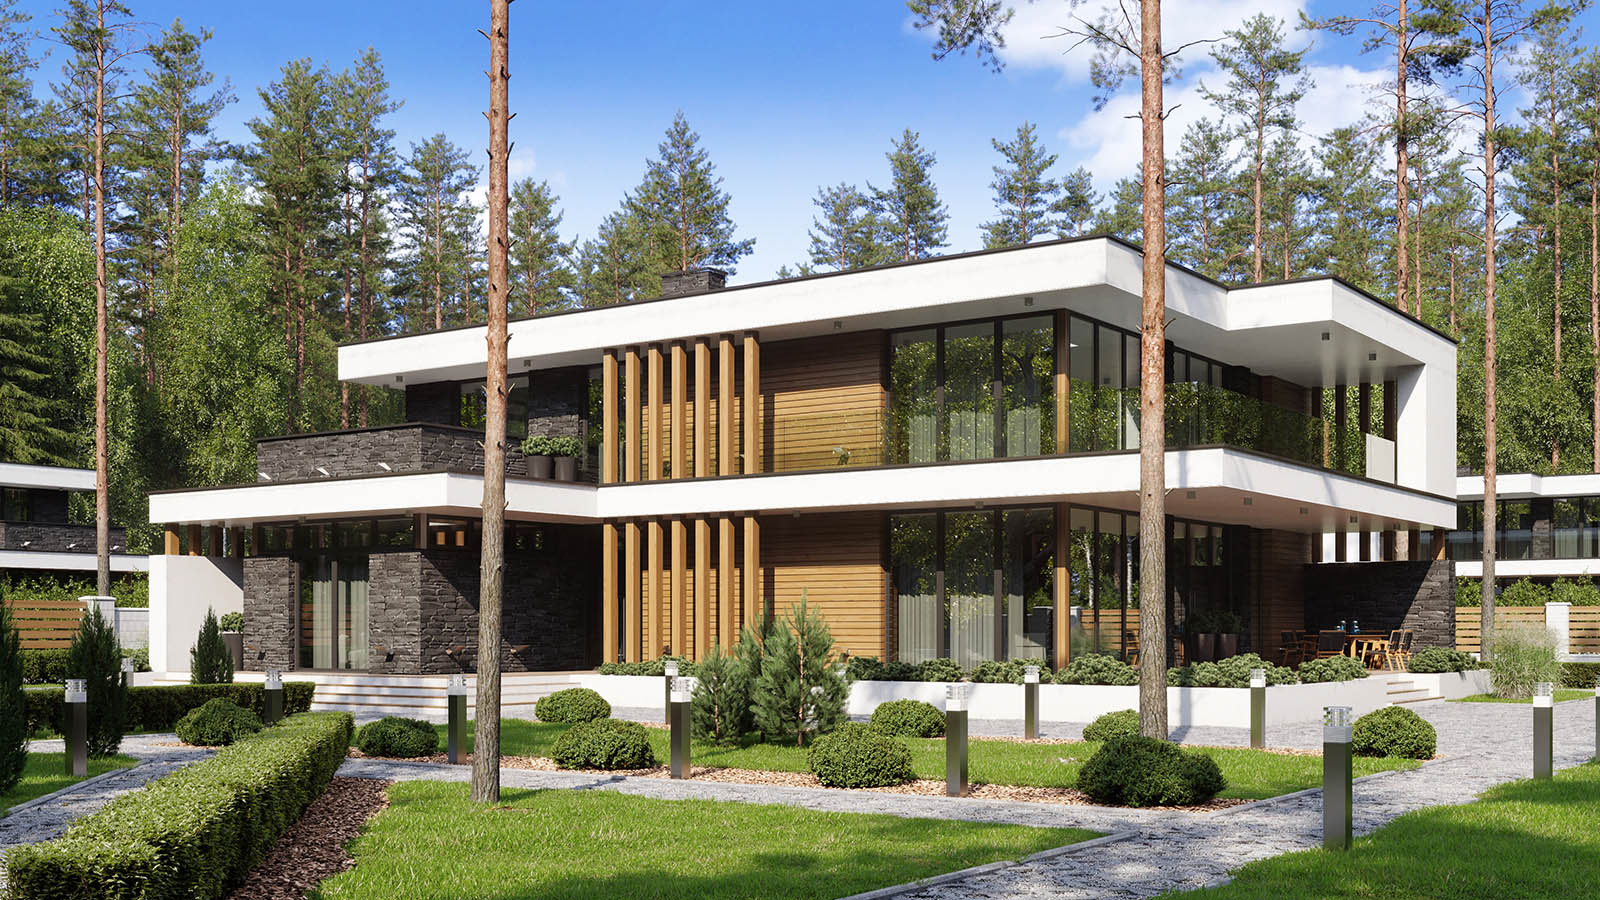 Modern Houses 3D Visualizations_by Capture.Design for ISO